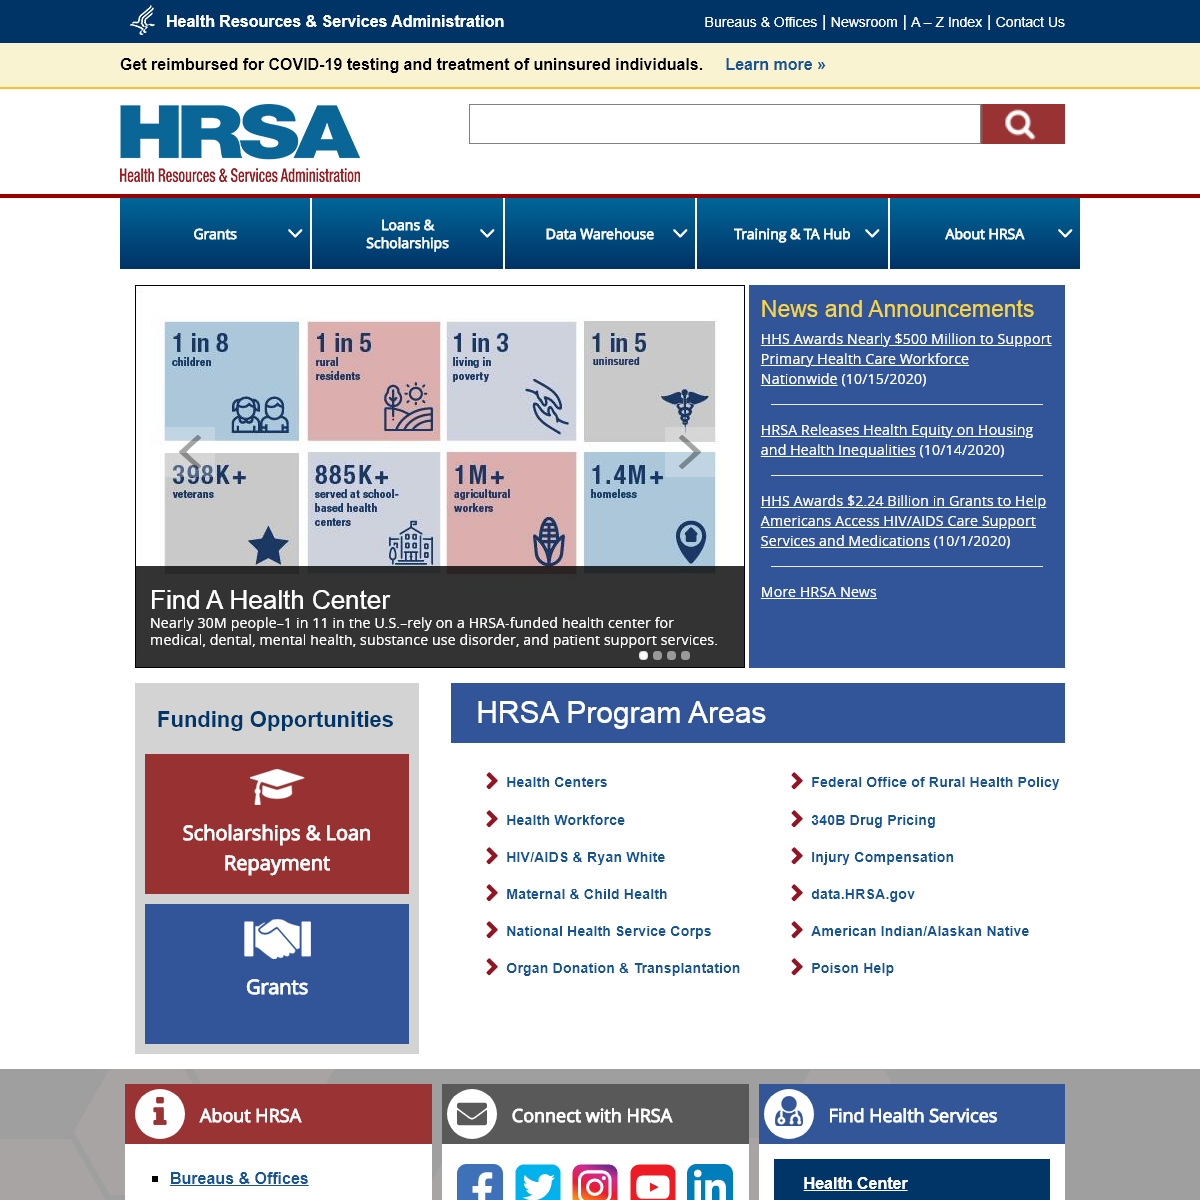 Official web site of the U.S. Health Resources & Services Administration -